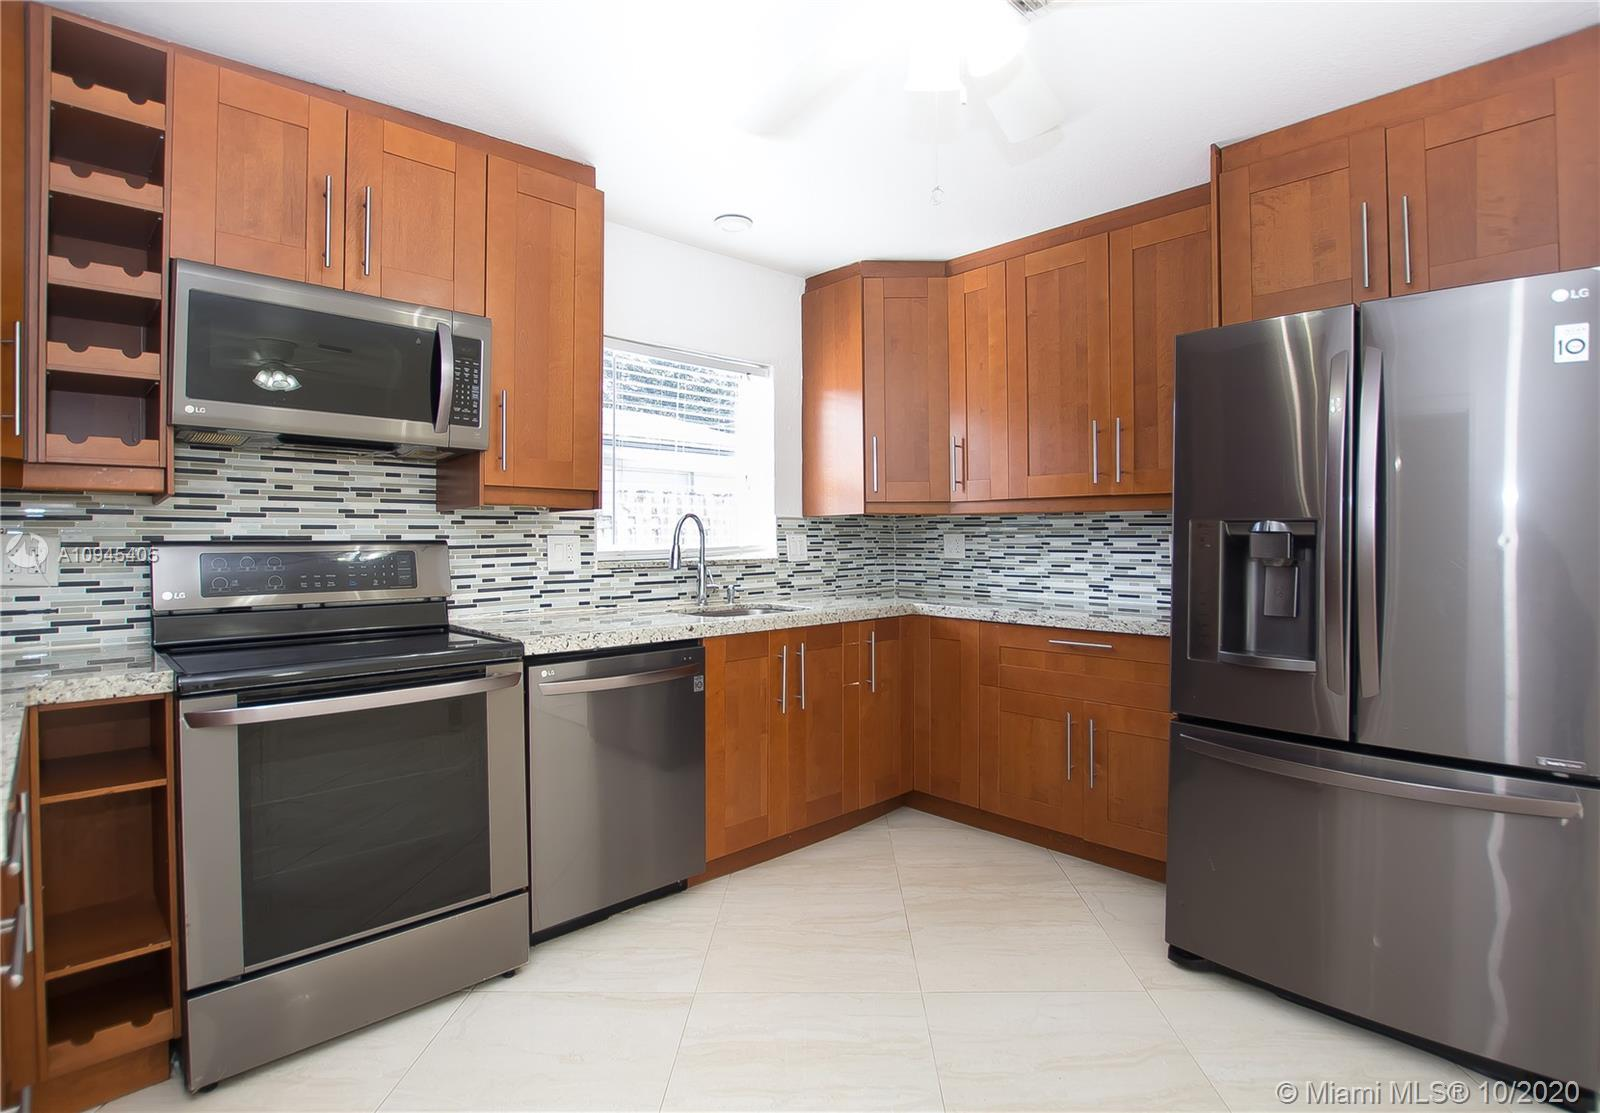 SINGLE FAMILY HOME 3/2 + OFFICE SPACE**RECENTLY UPGRADE WITH WHITE PORCELAINE FLOOR THROUGOUT**NEW K